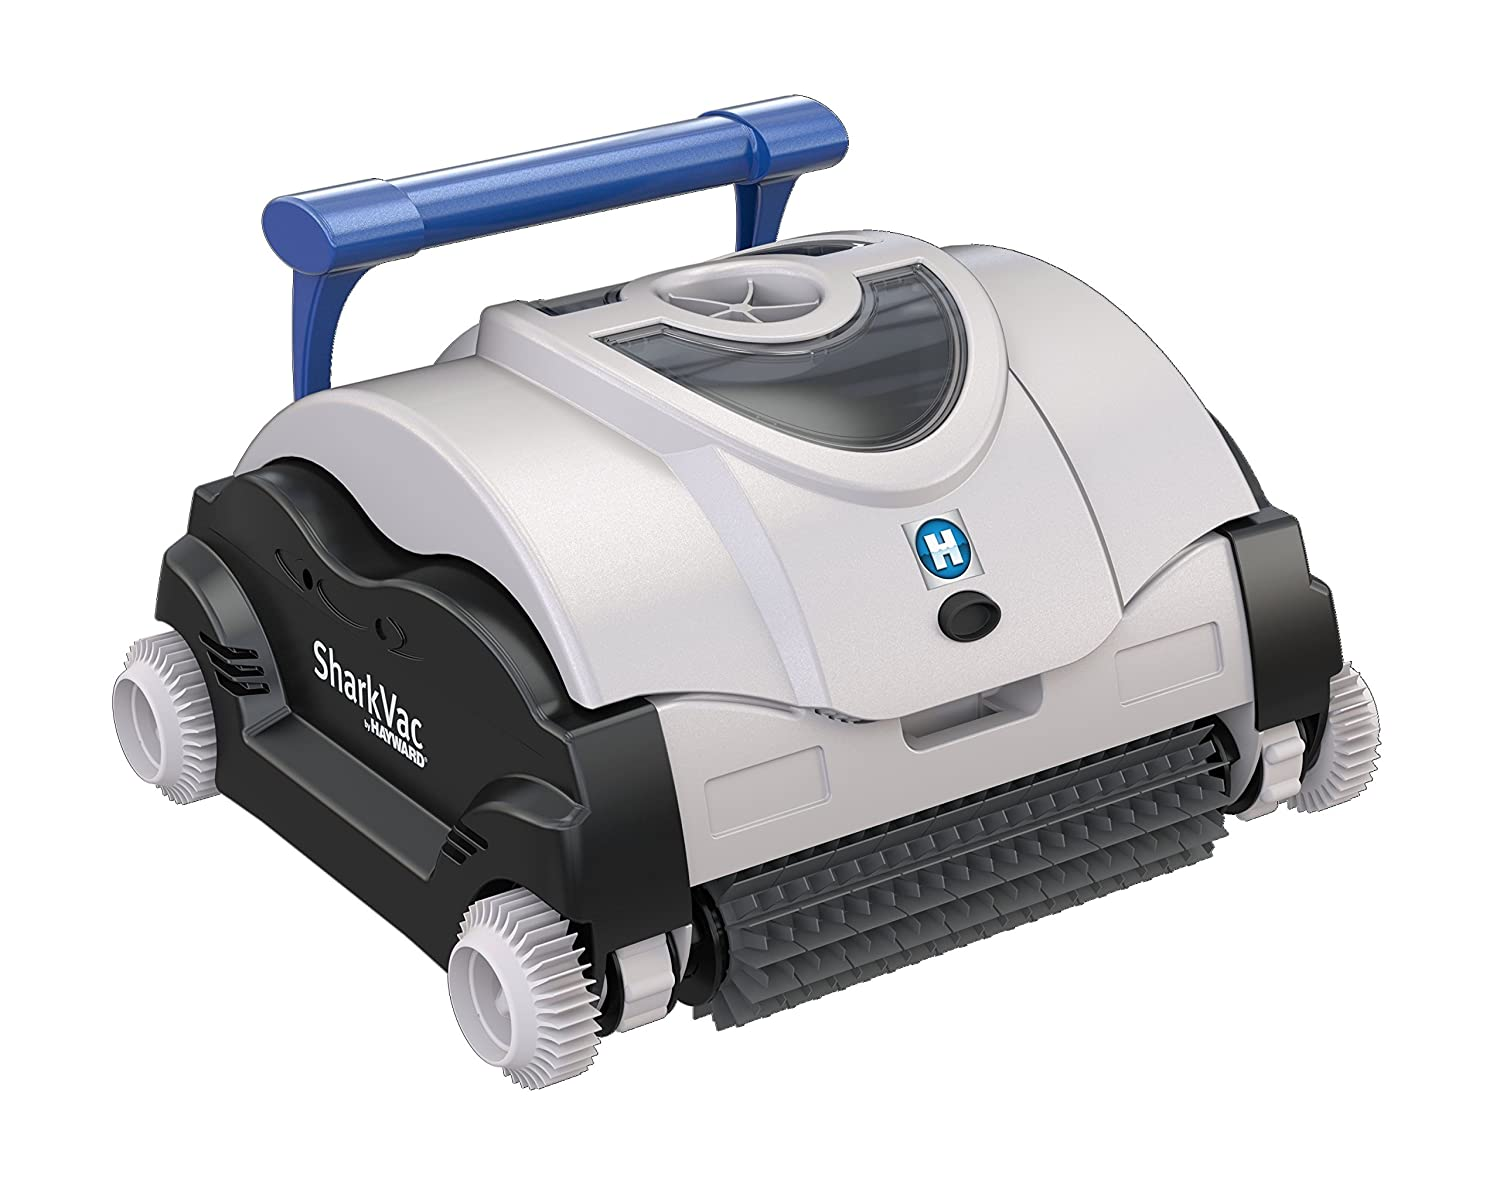 Hayward RC9740CUB SharkVac